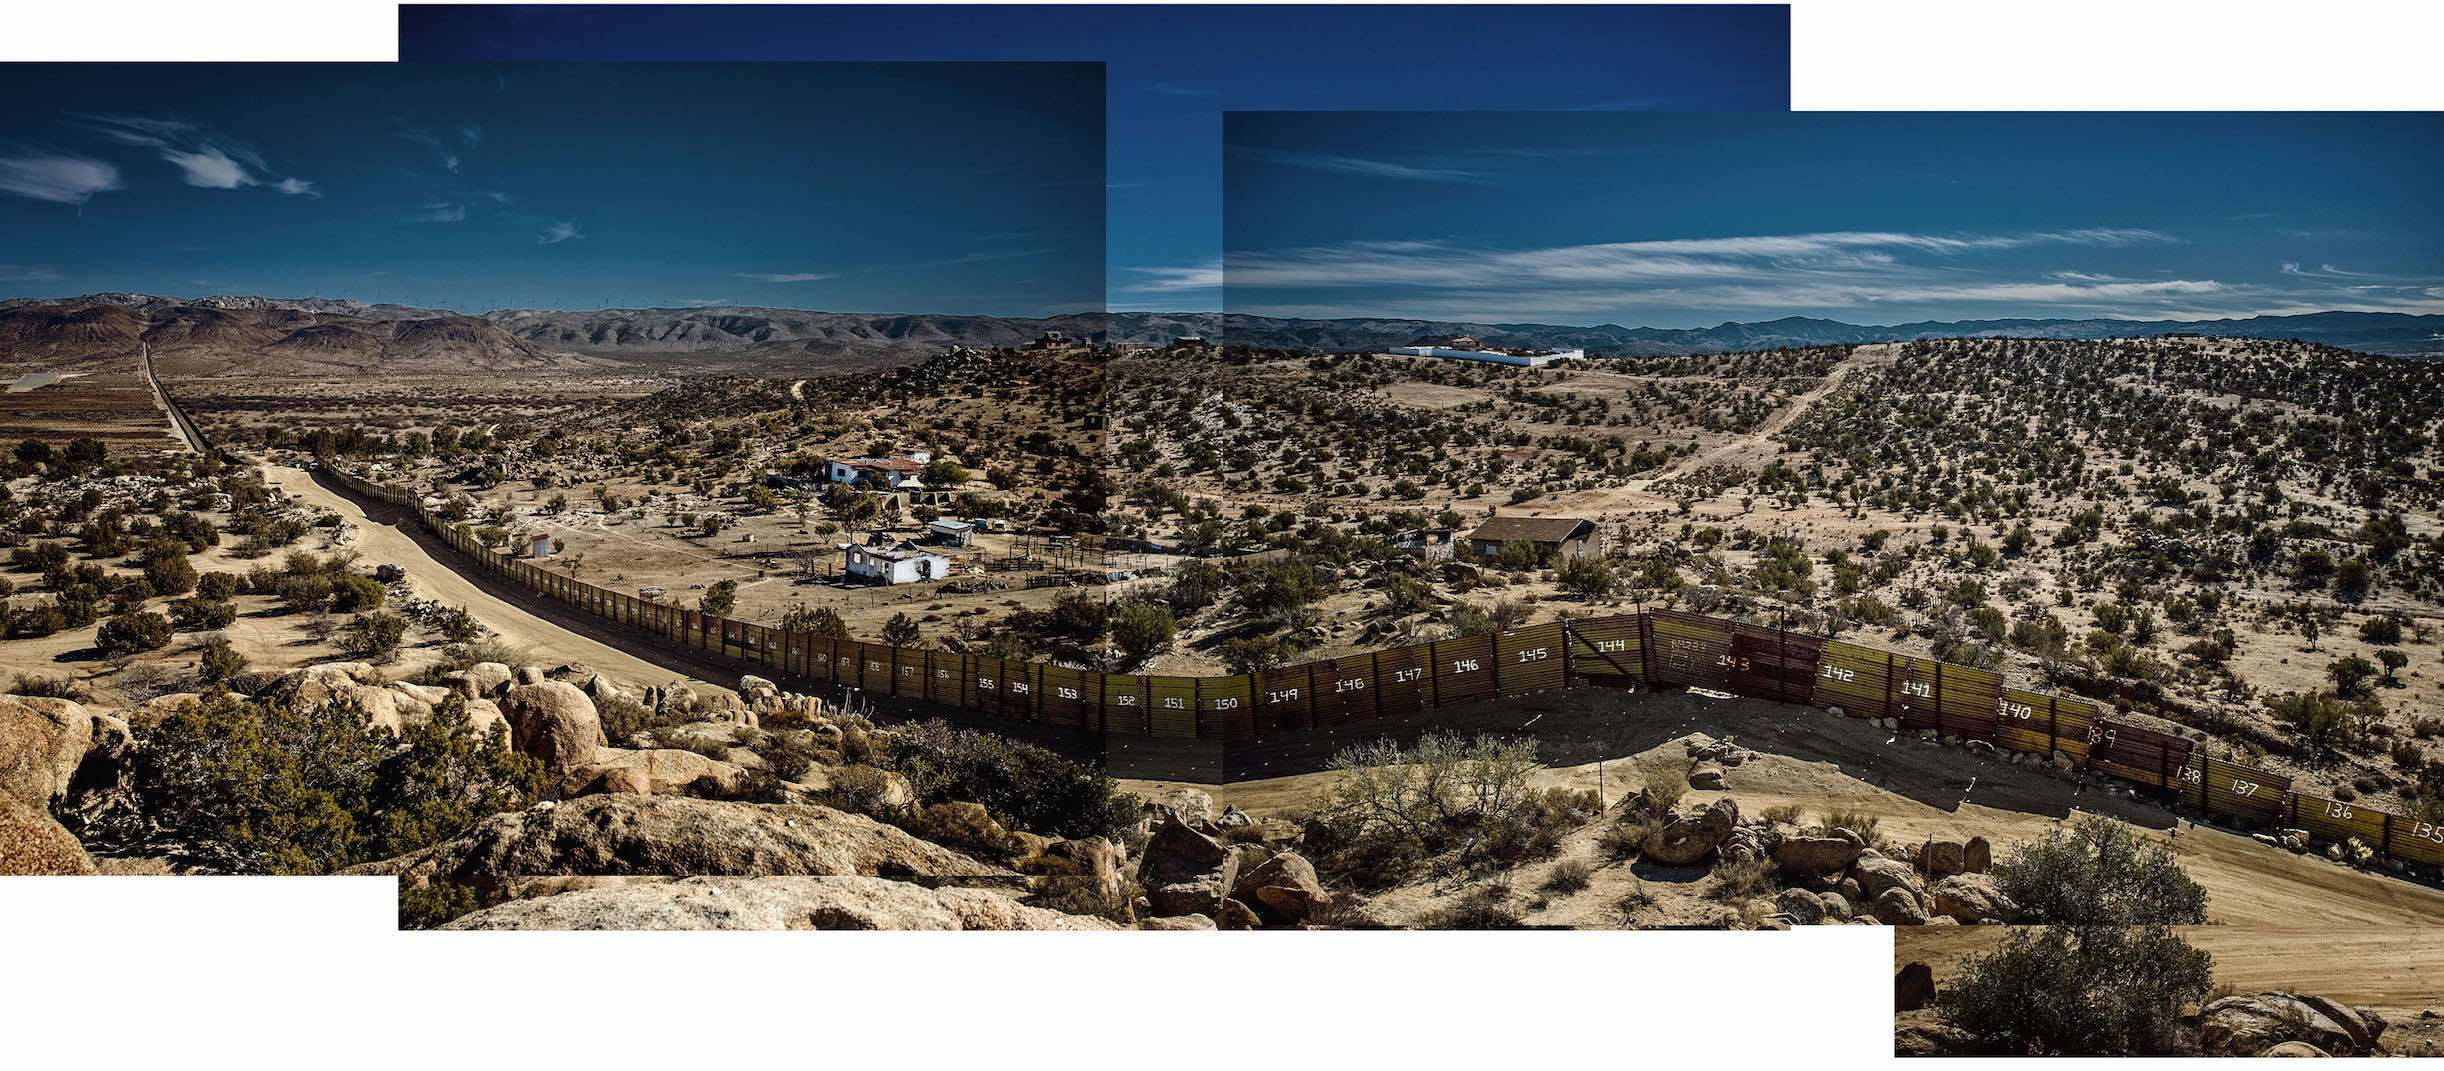 the border, la frontera via national geographic